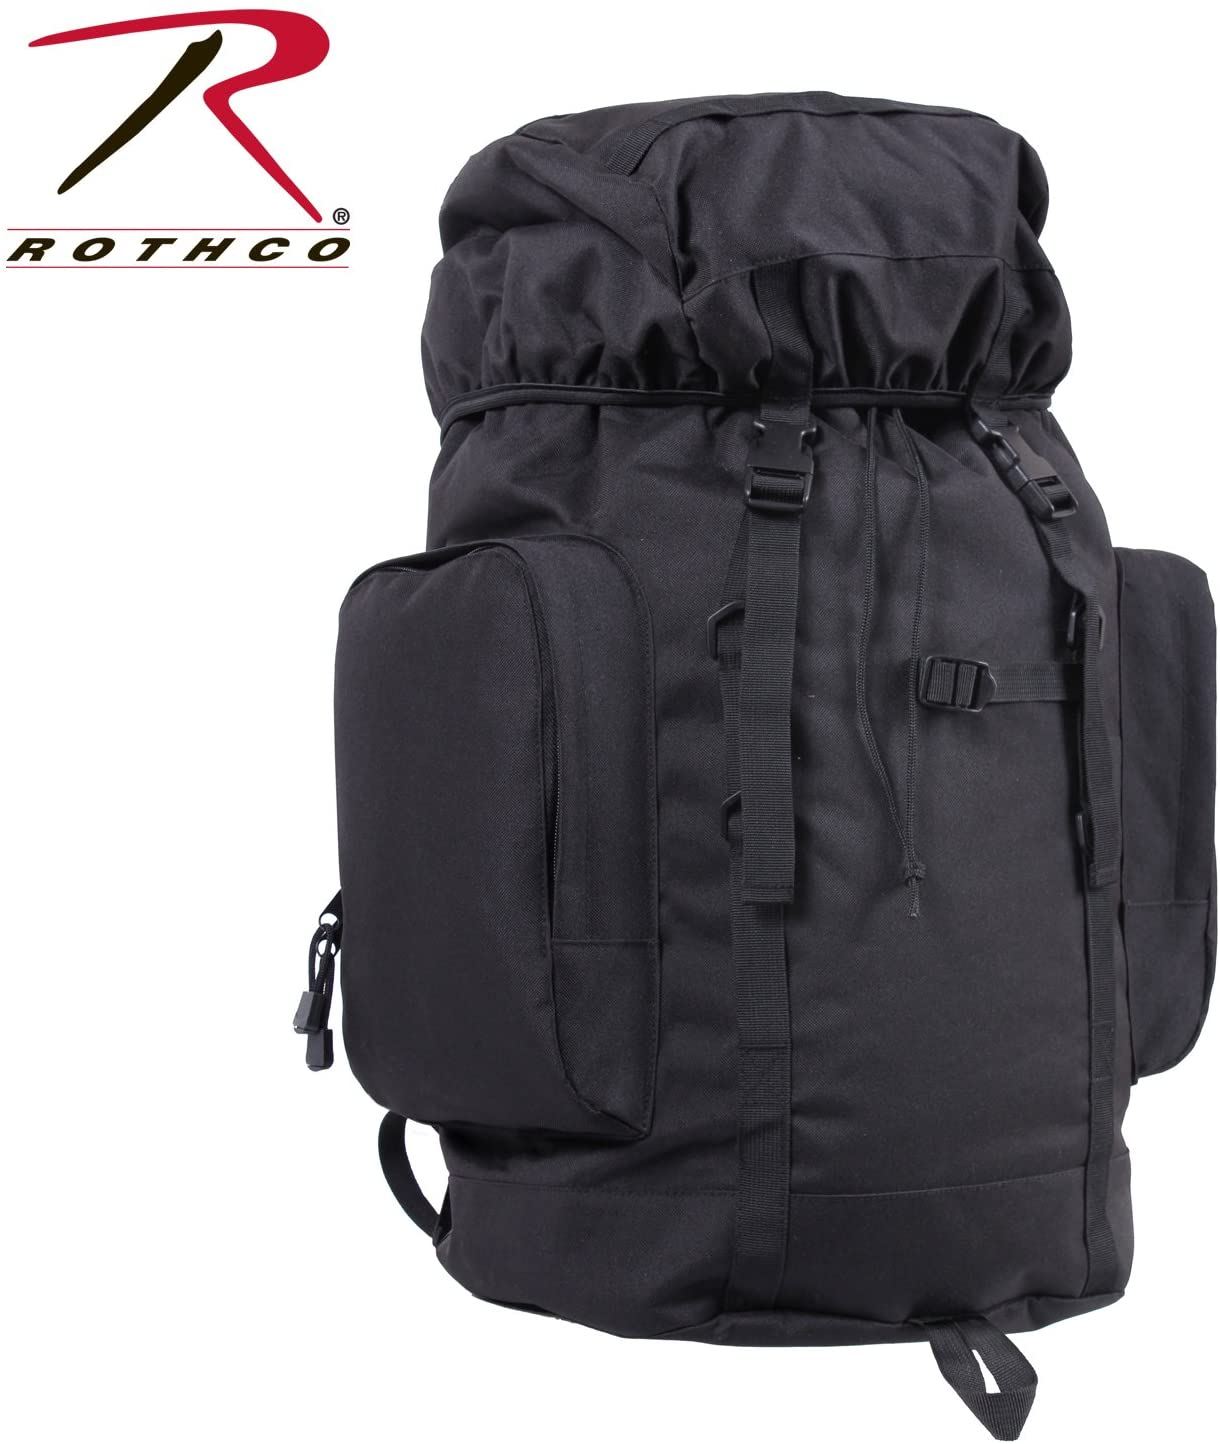 Rothco 45L Tactical Backpack, Black